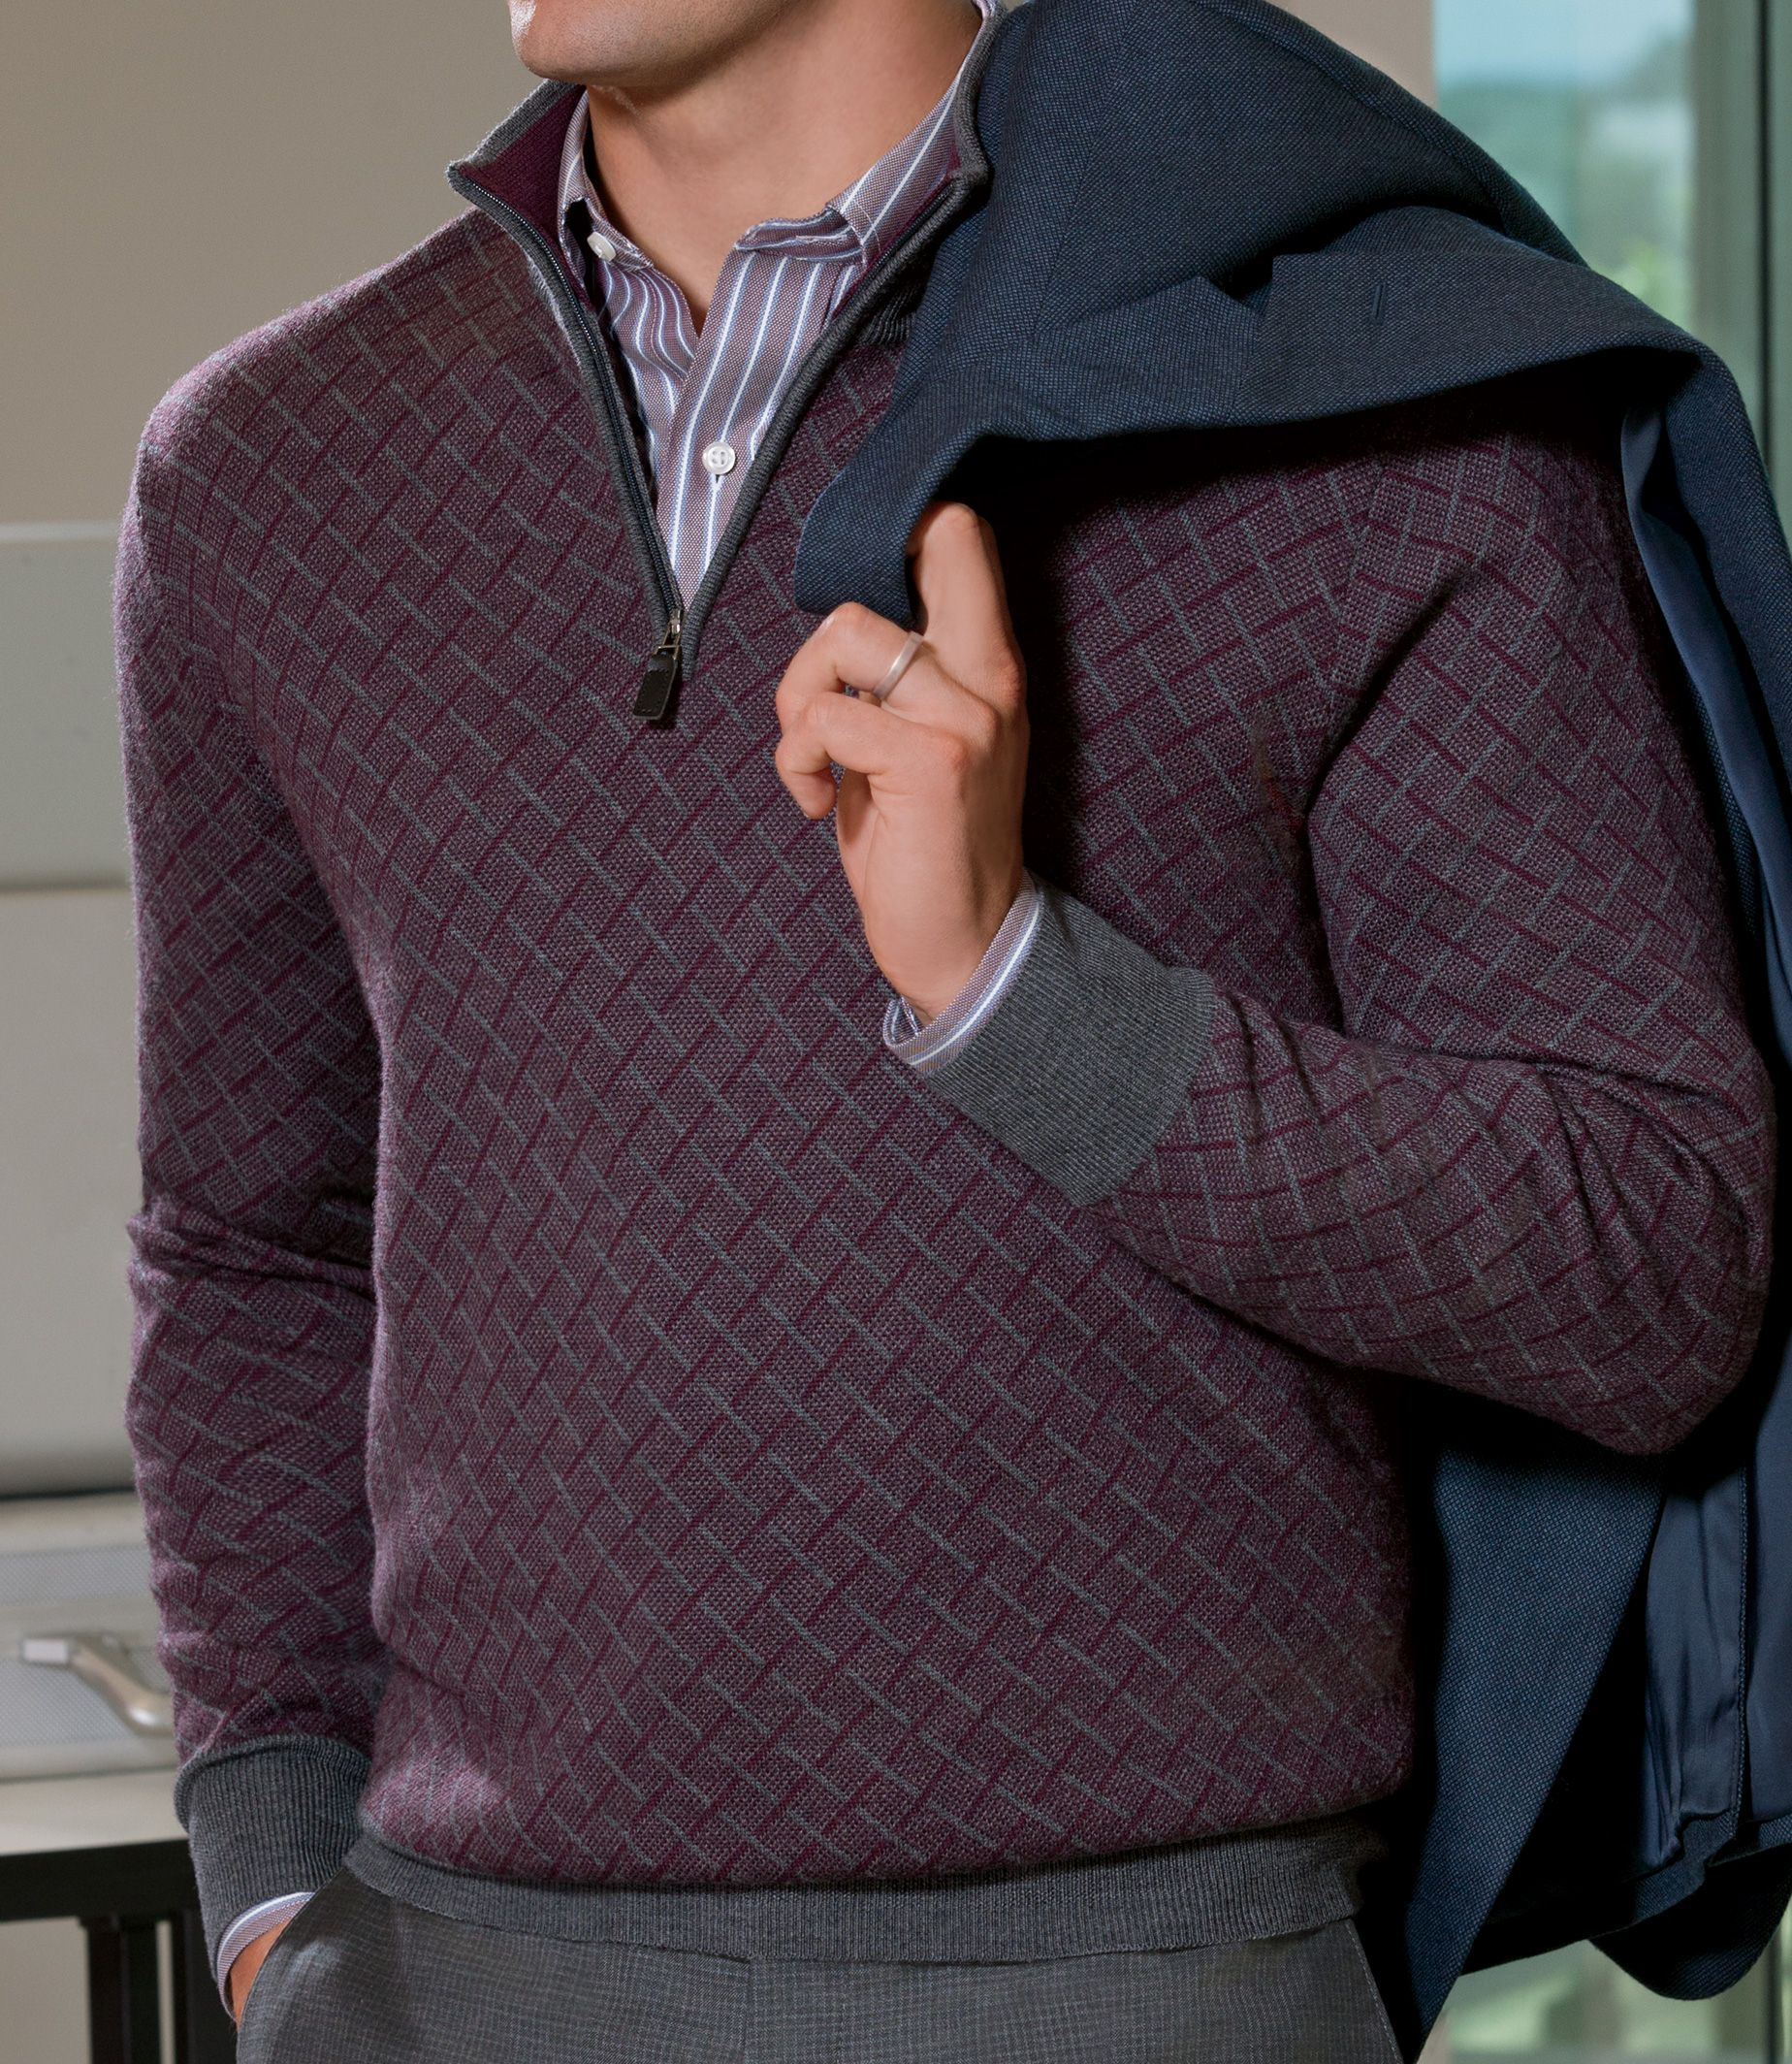 $19 Sweaters | Men's Clearance Blowout | JoS. A. Bank Clothiers